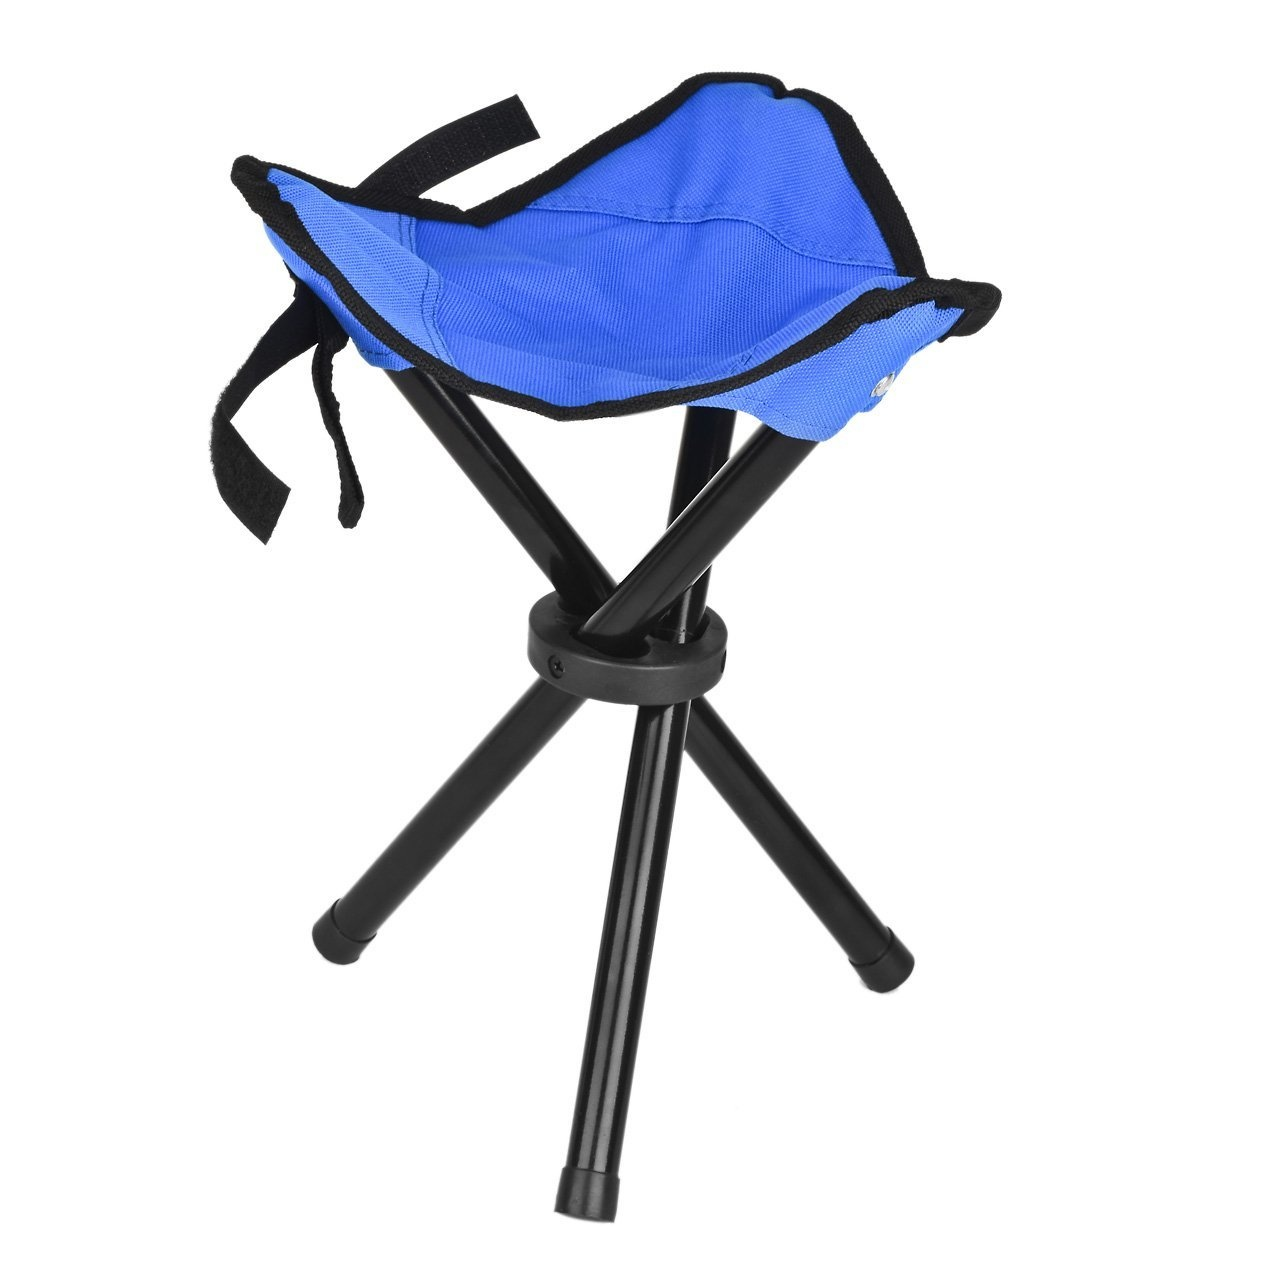 Eyourlife Foldable Stool Slacker Chair Tri Legged Portable